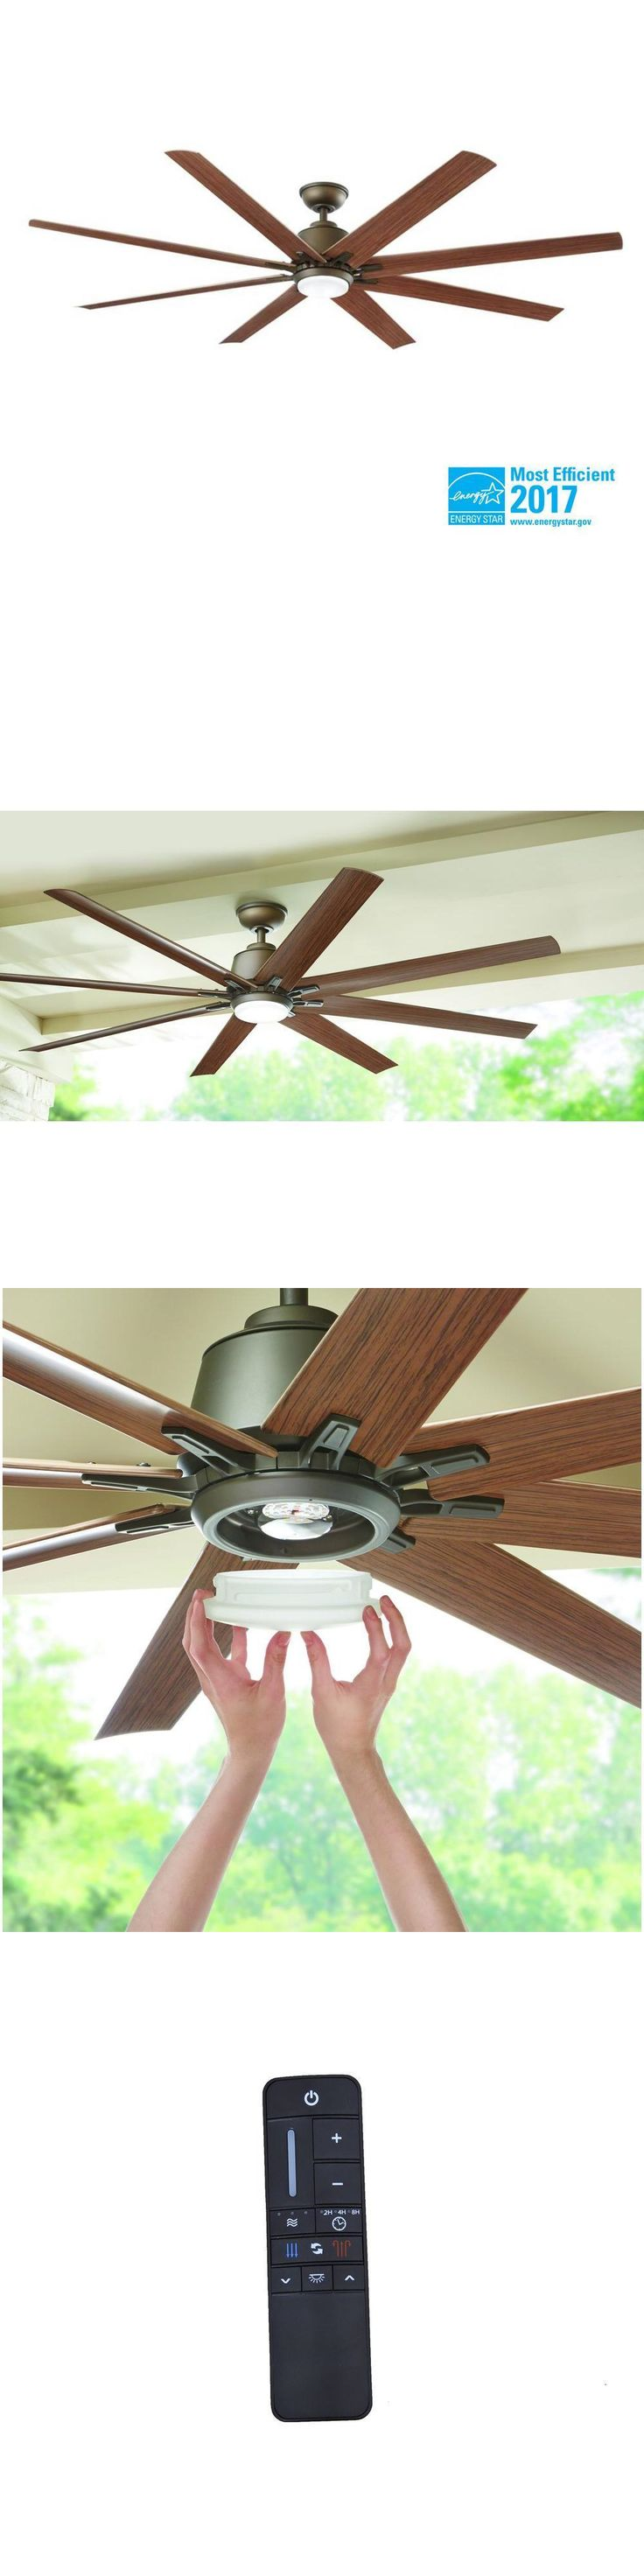 Emerson aira eco 72 inch oil rubbed bronze modern ceiling fan free - Ceiling Fans 176937 Home Decorators Kensgrove 72 In Led Indoor Outdoor Espresso Bronze Ceiling